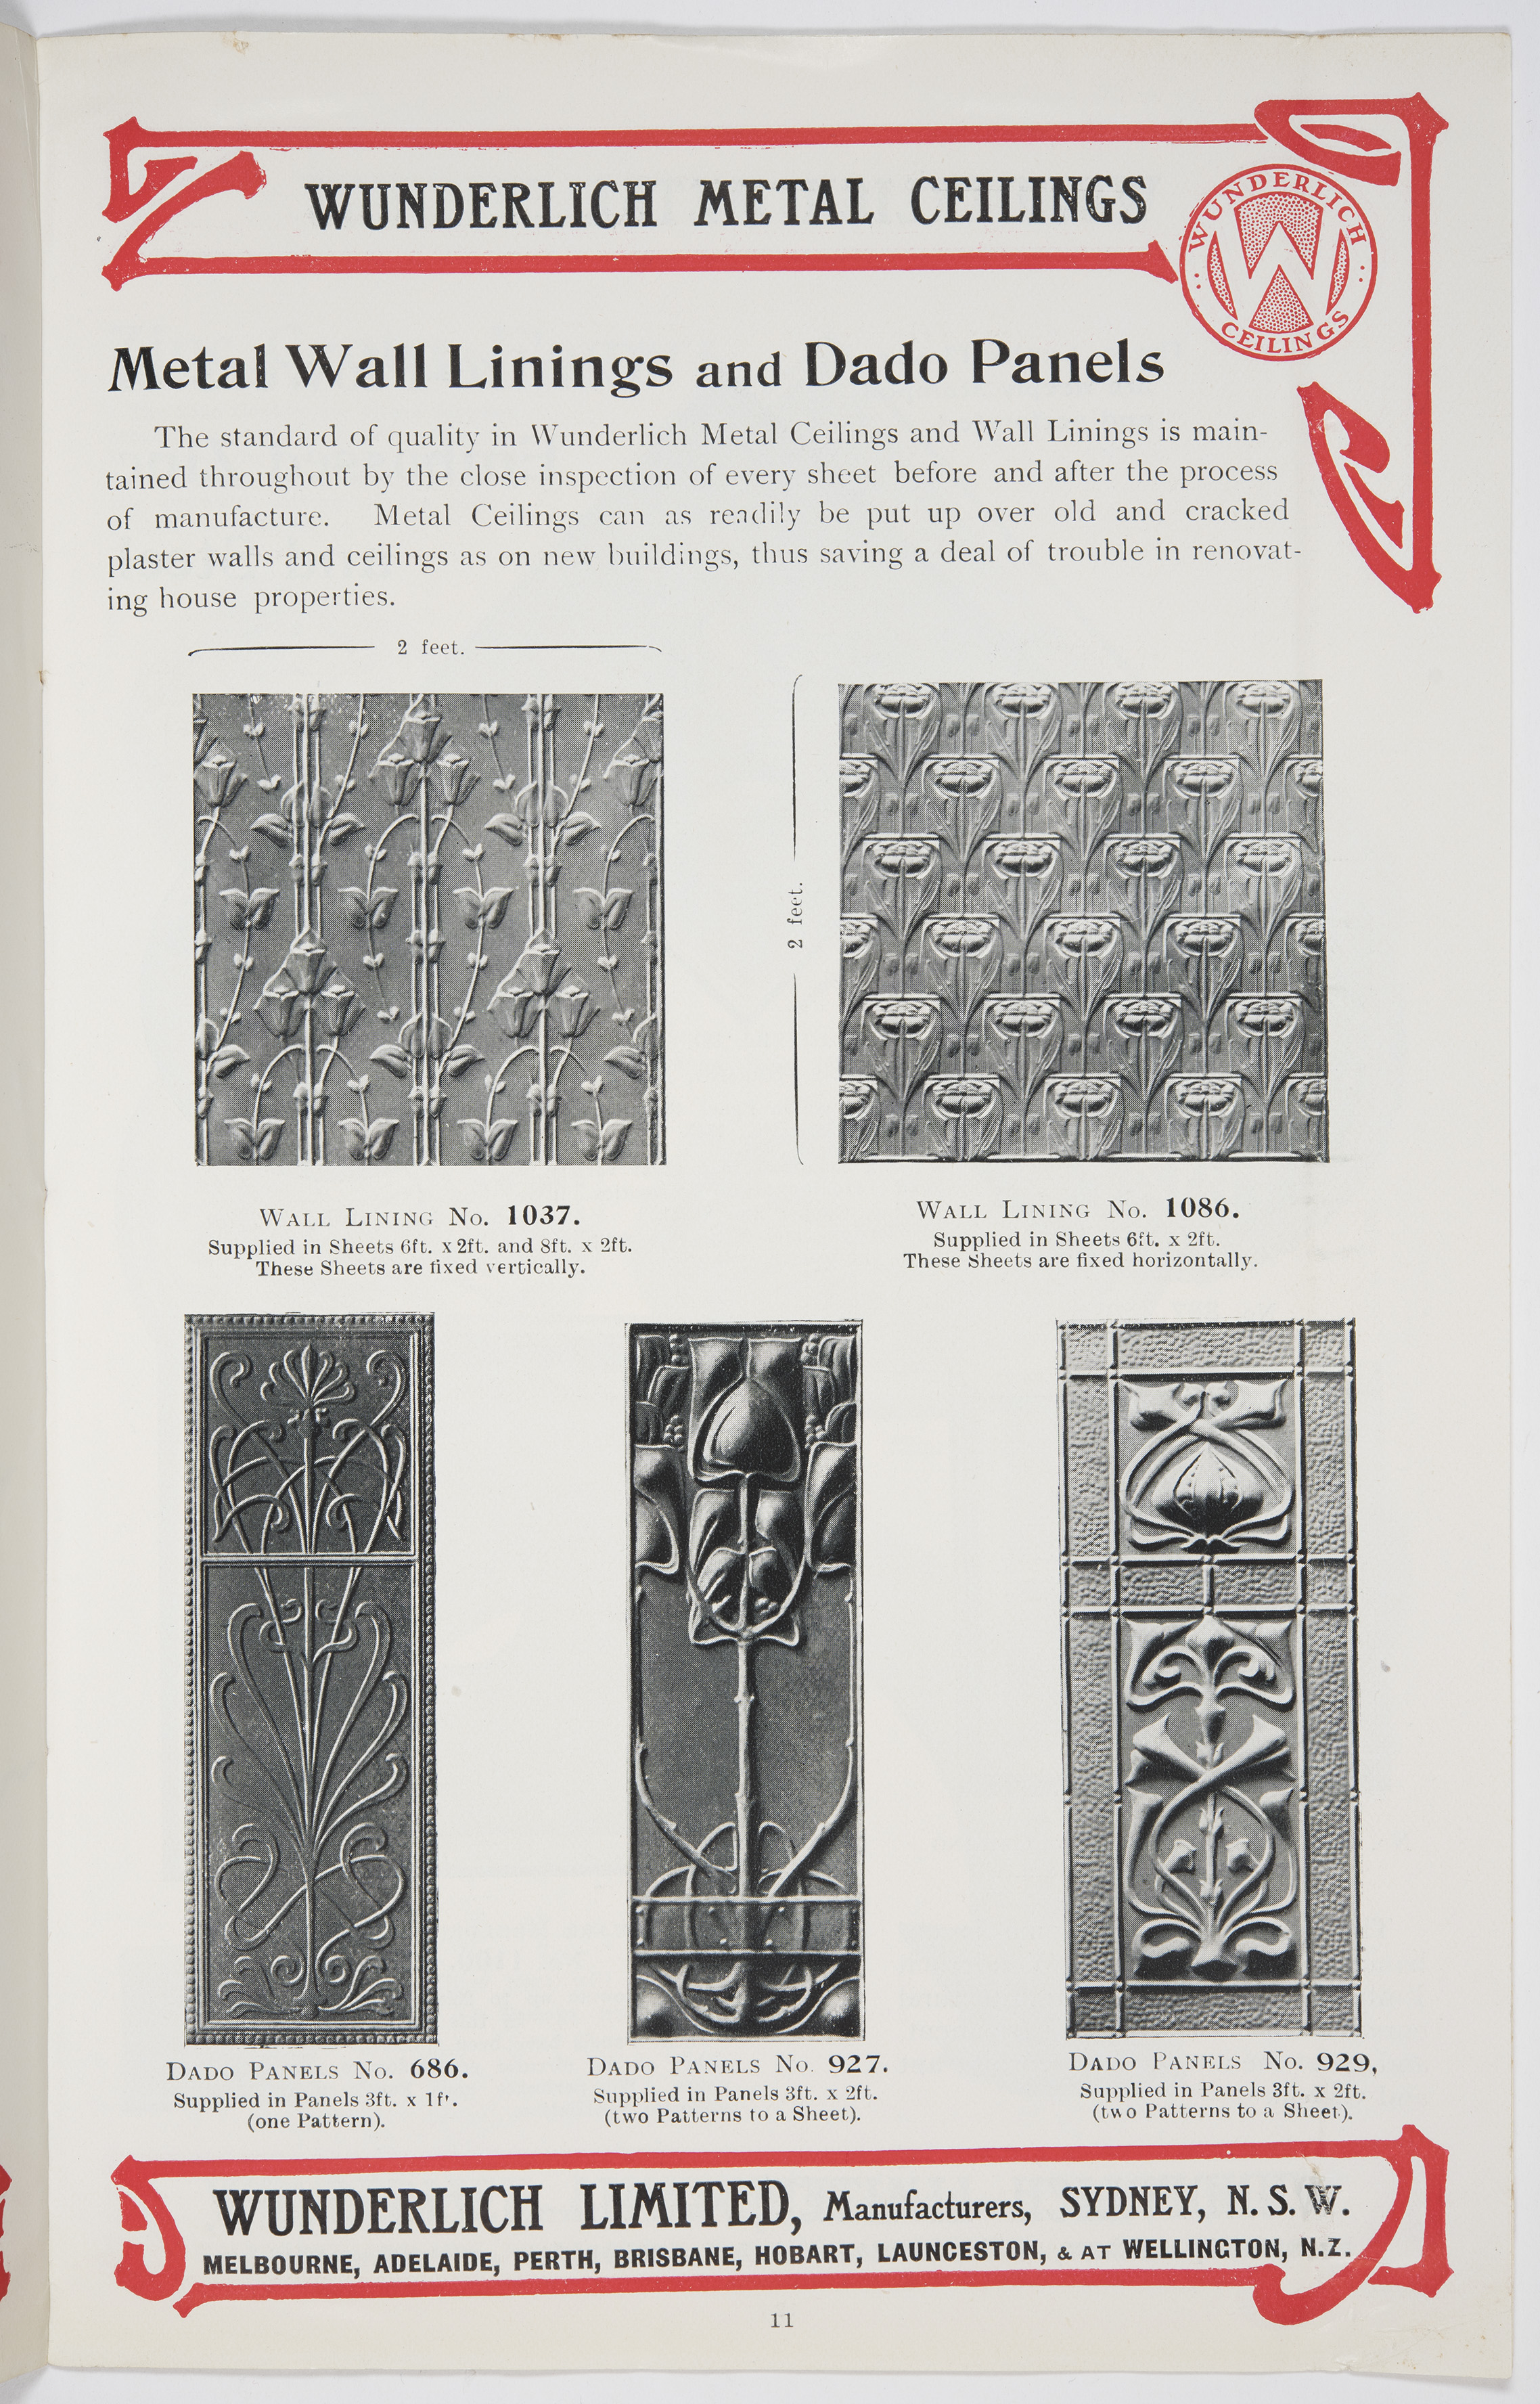 A page from a Wunderlich Limited catalogue showing different wall panel waratah motifs.